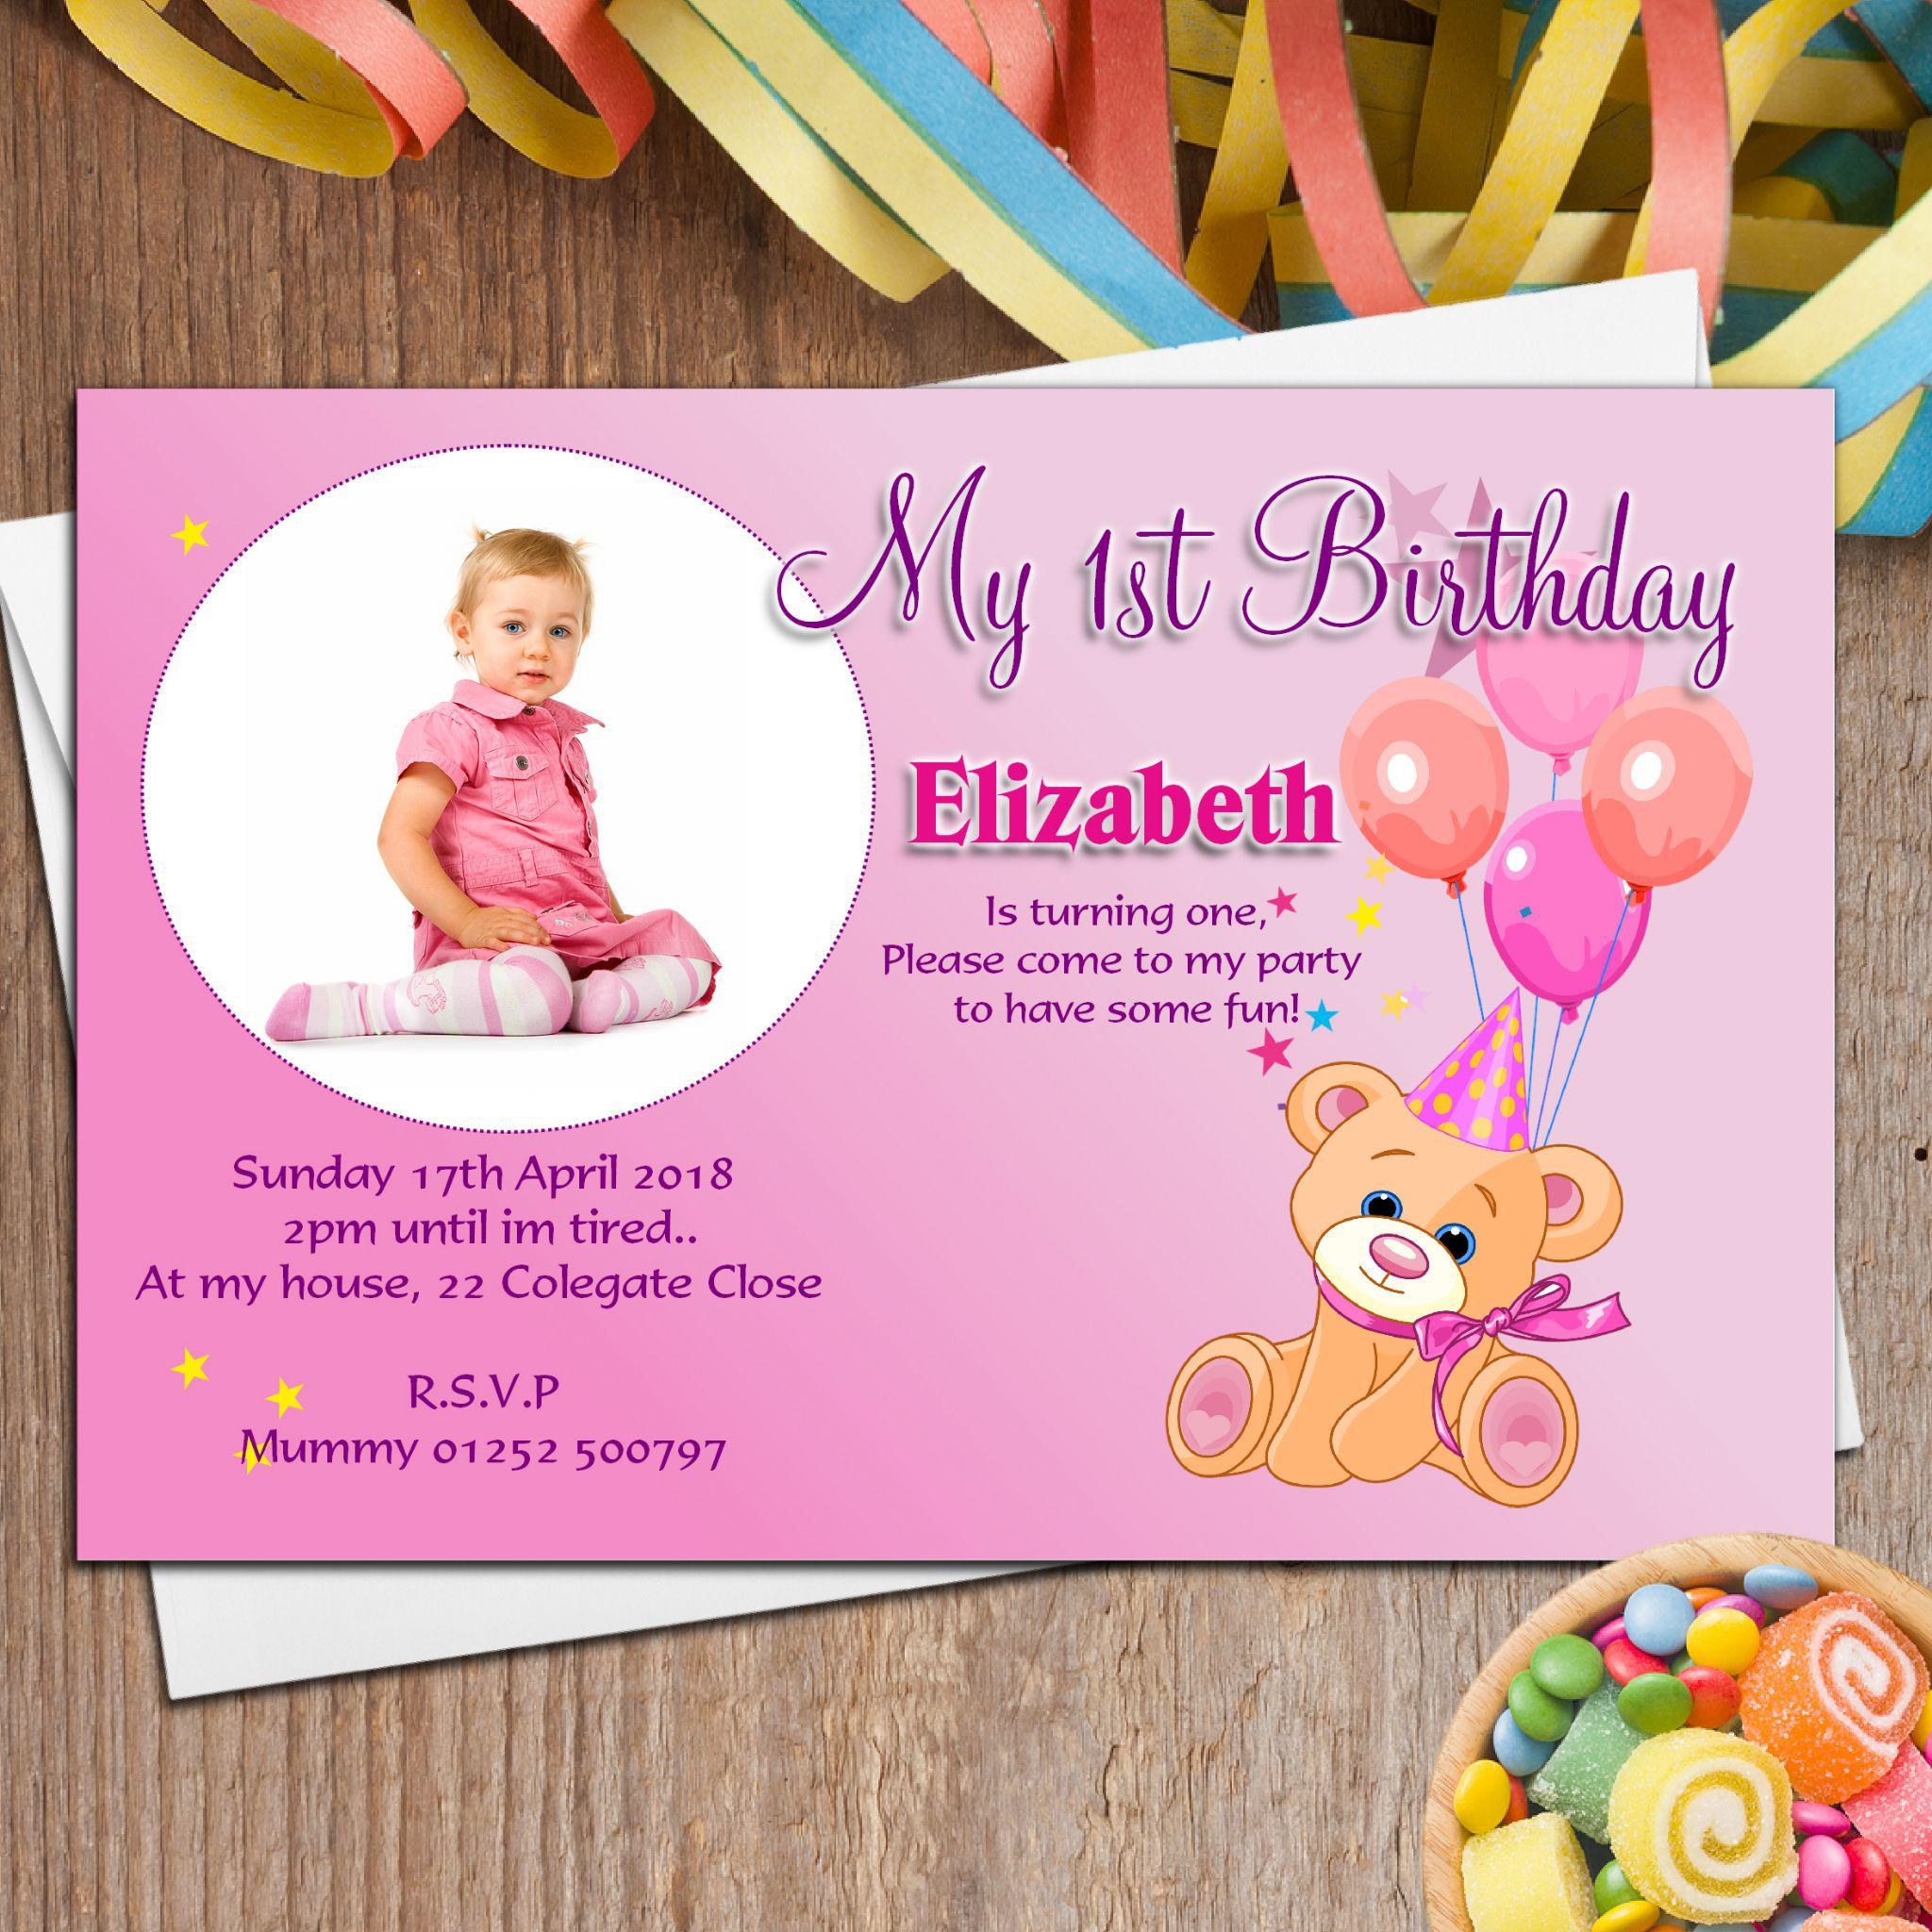 happy birthday invitation card design ; Birthday-Invitation-Cards-Personalized-Teddy-Party-For-Girl